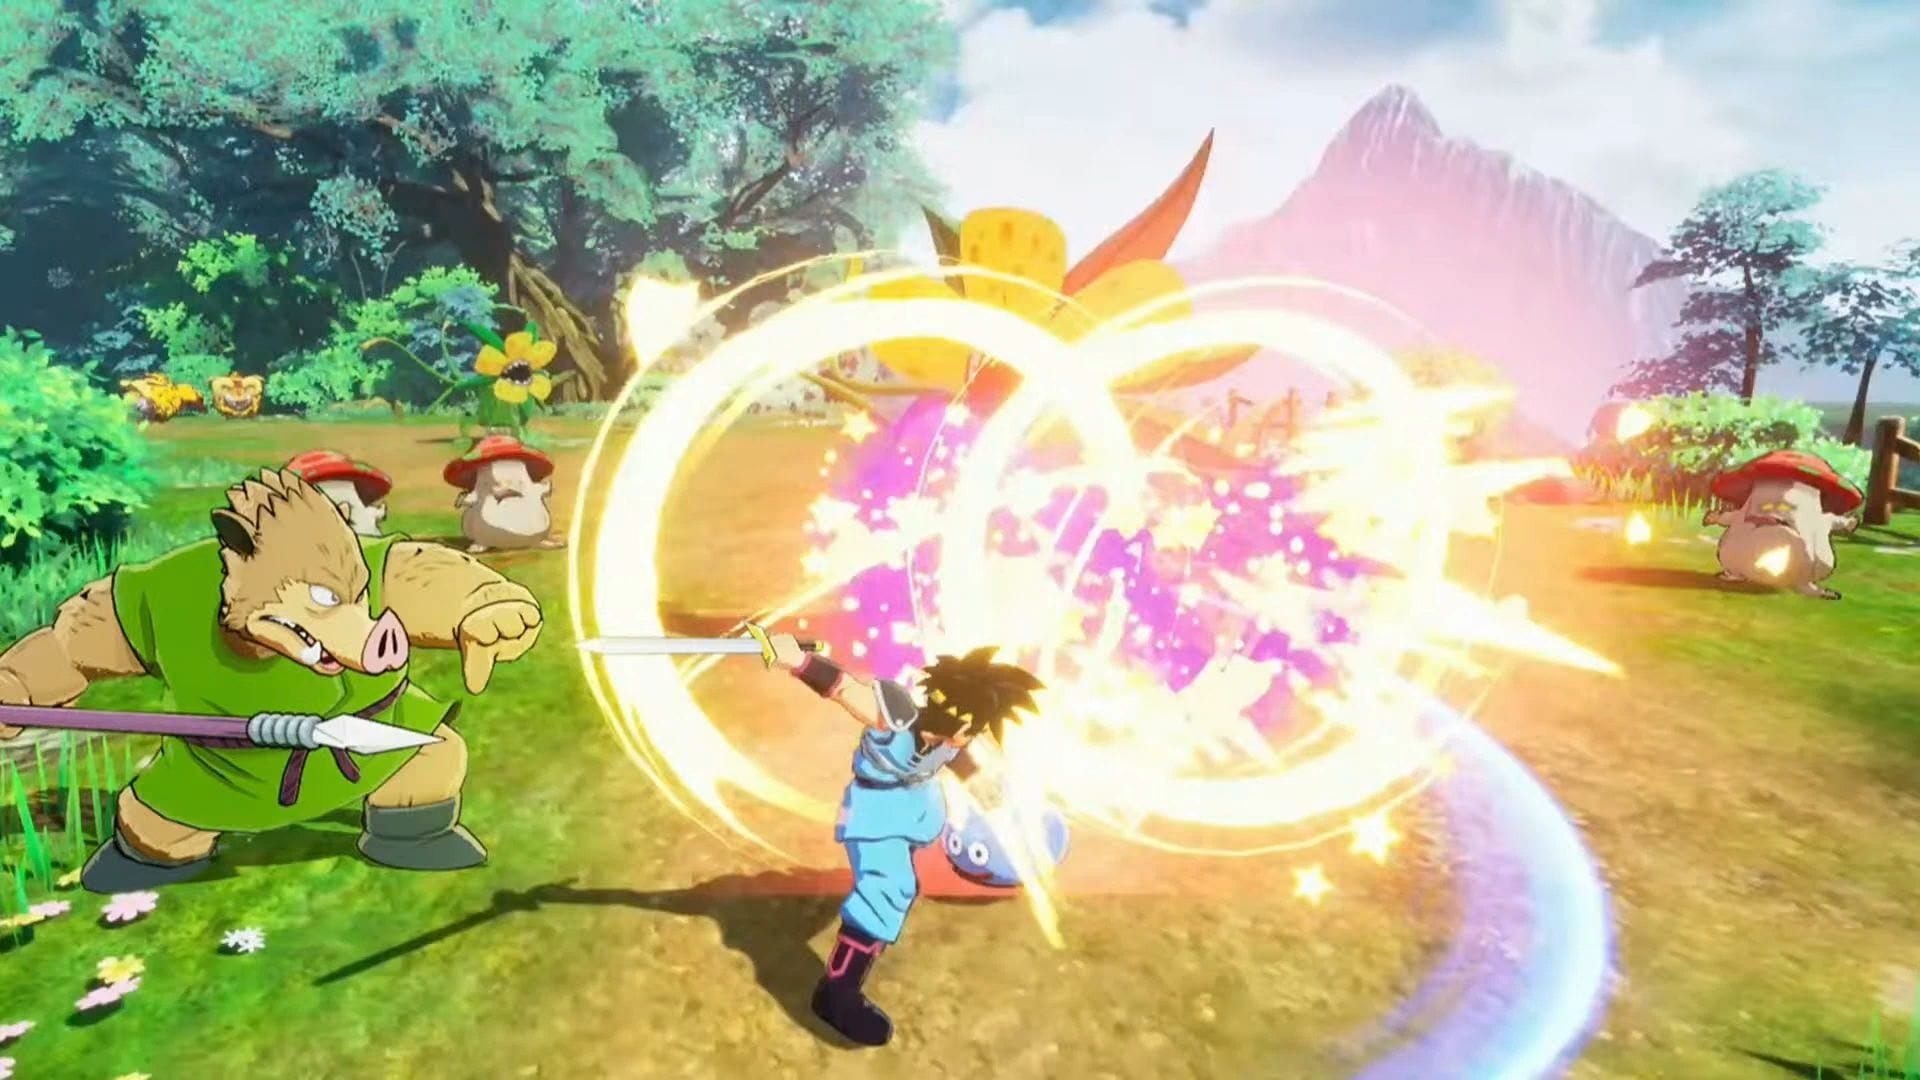 Dragon Quest: The Adventure of Dai - Infinity Strash - Gameplay